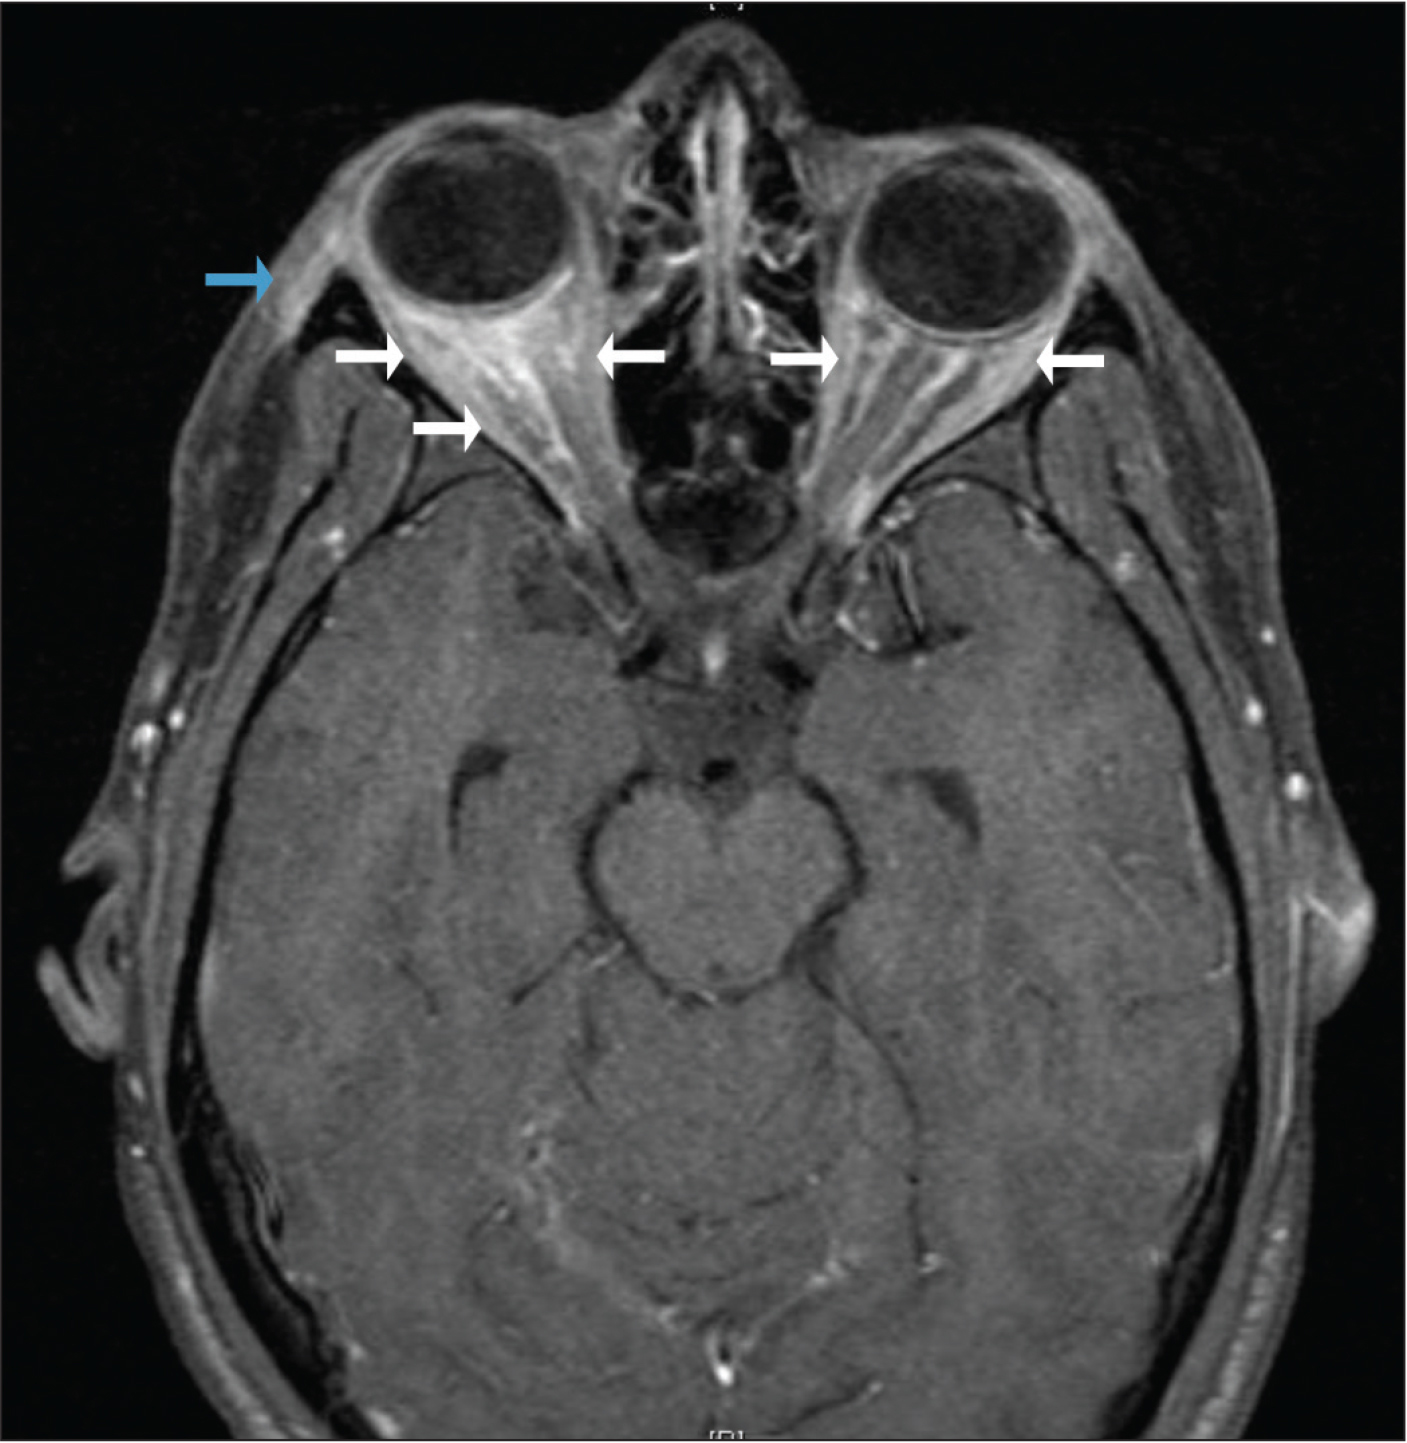 Transverse view of gadolinium-enhanced, fat-saturated magnetic resonance image of orbits showing mild right-sided proptosis, right preseptal soft tissue enhancement (blue arrow), and bilateral enhancement of the retrobulbar fat (white arrows) (greater on the right side than on the left).